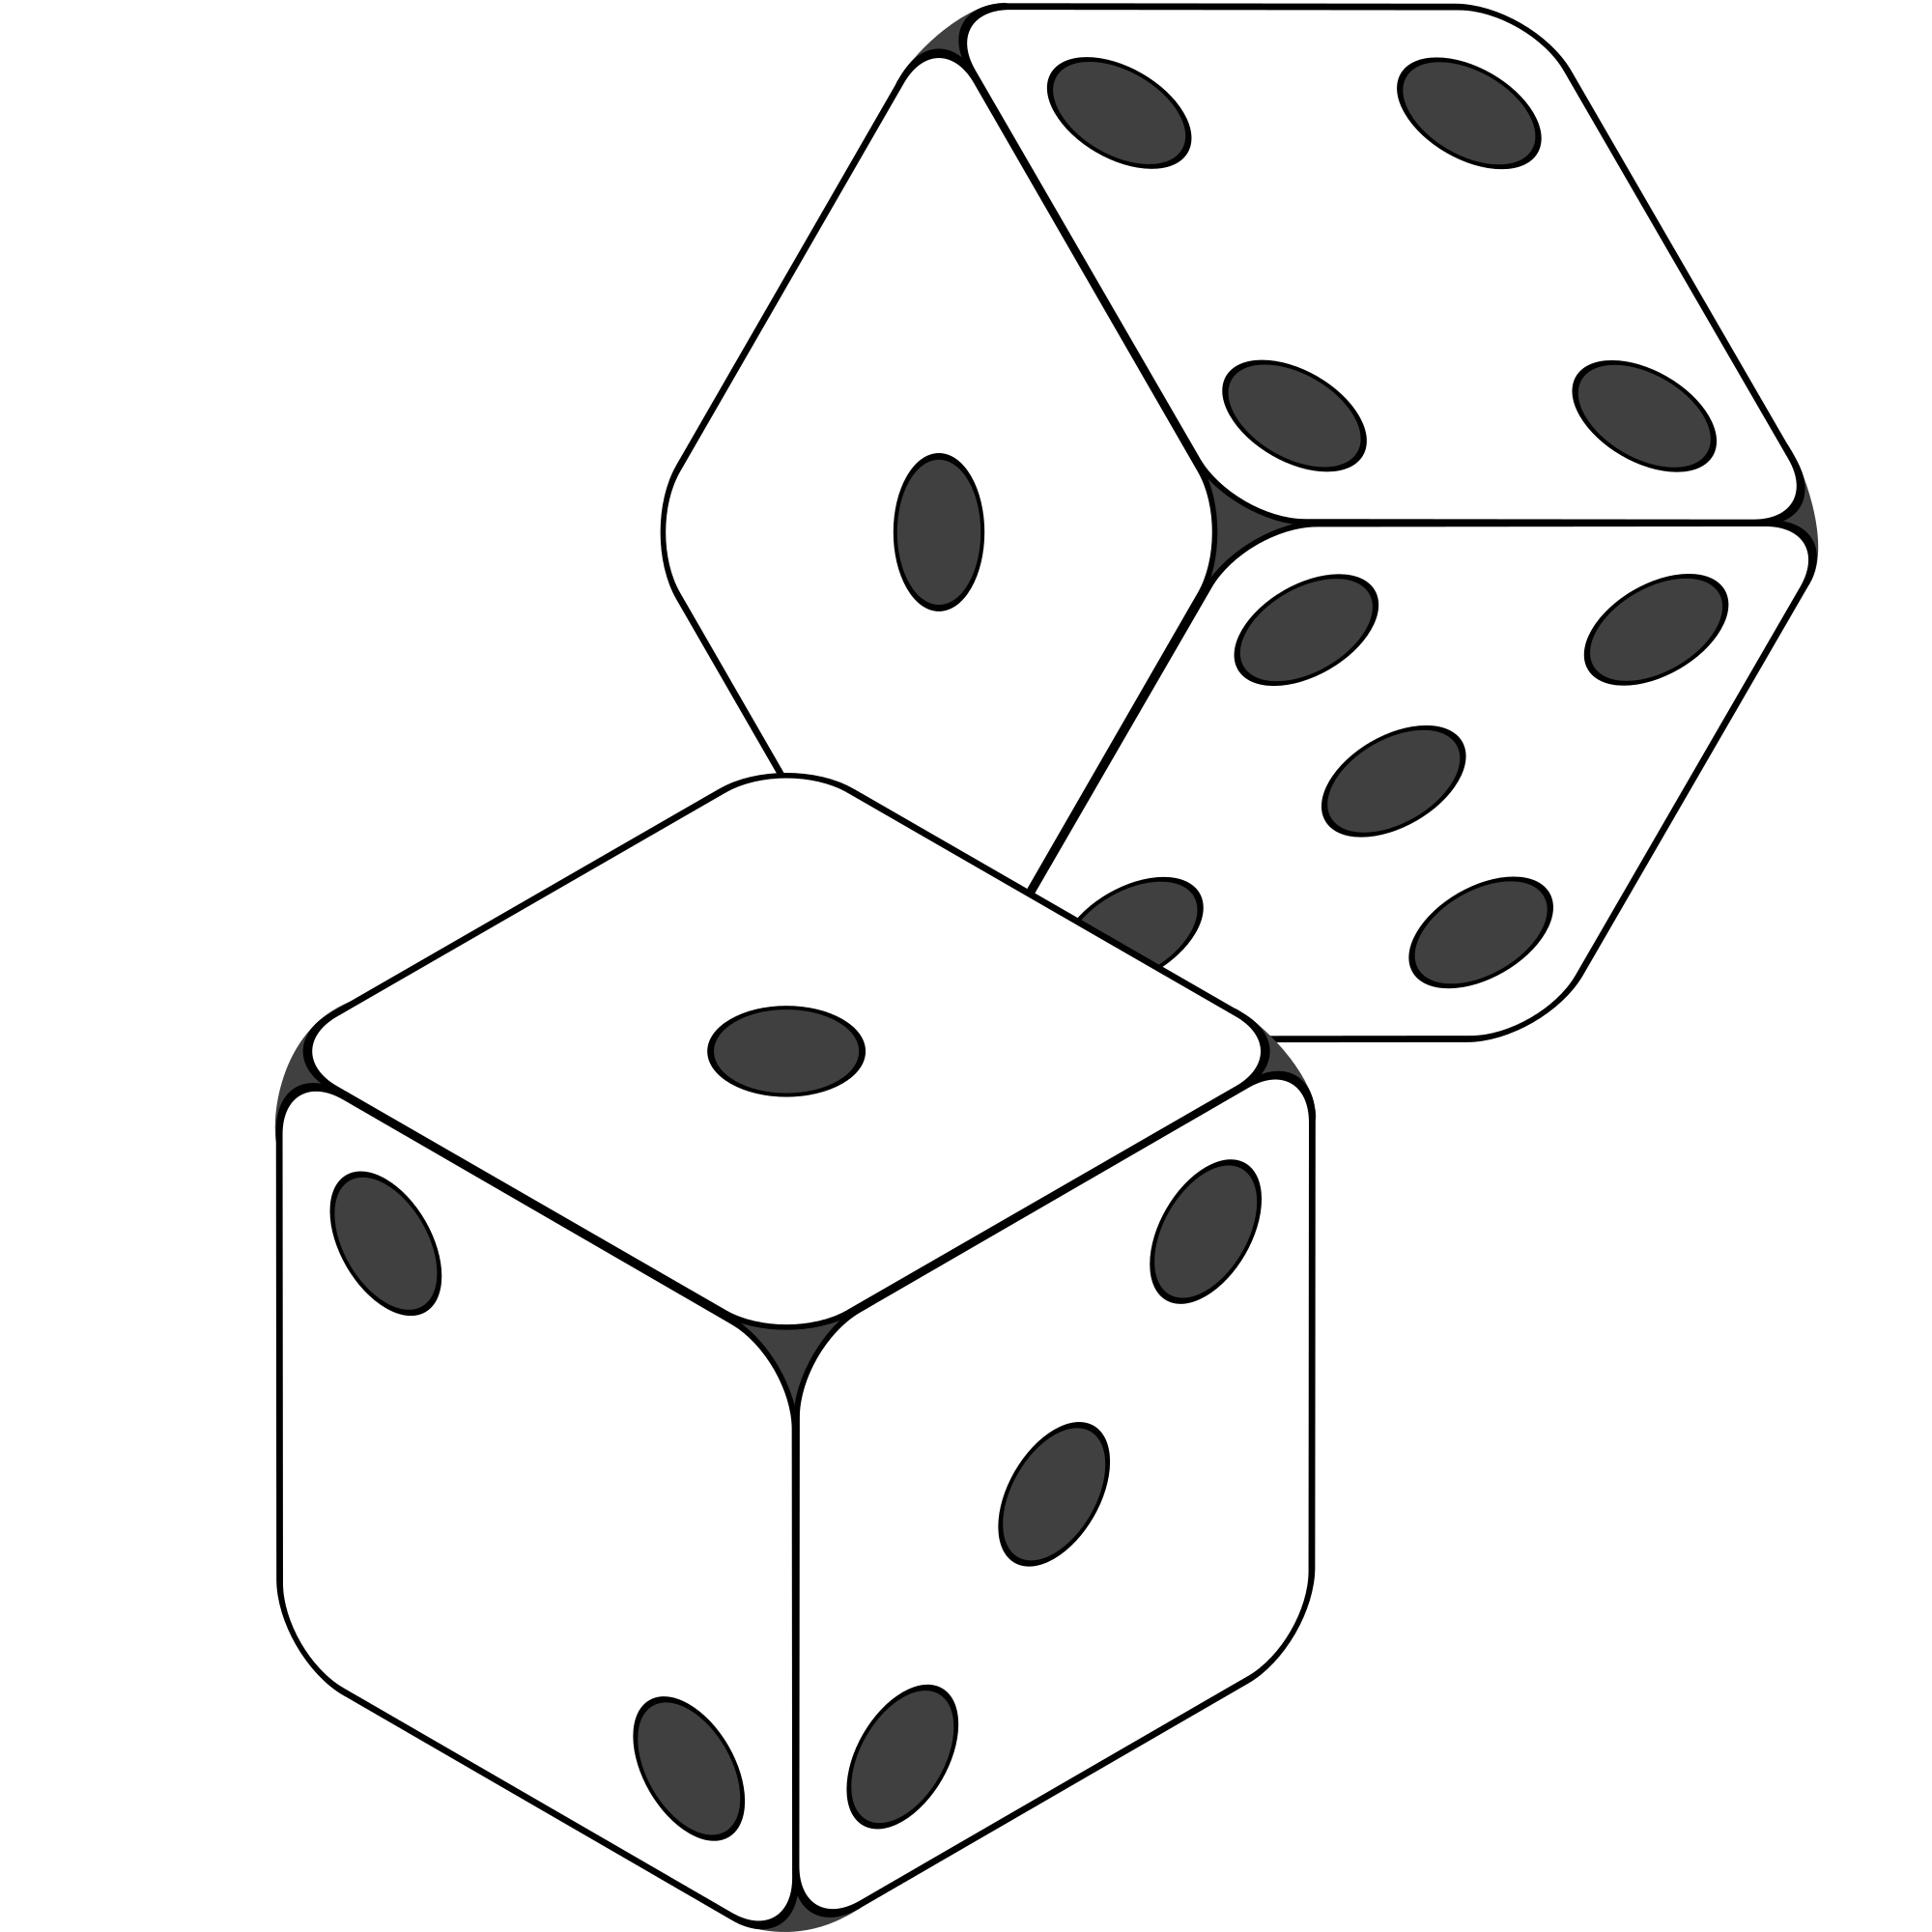 Number 3 Dice Clipart Black And White Clipground